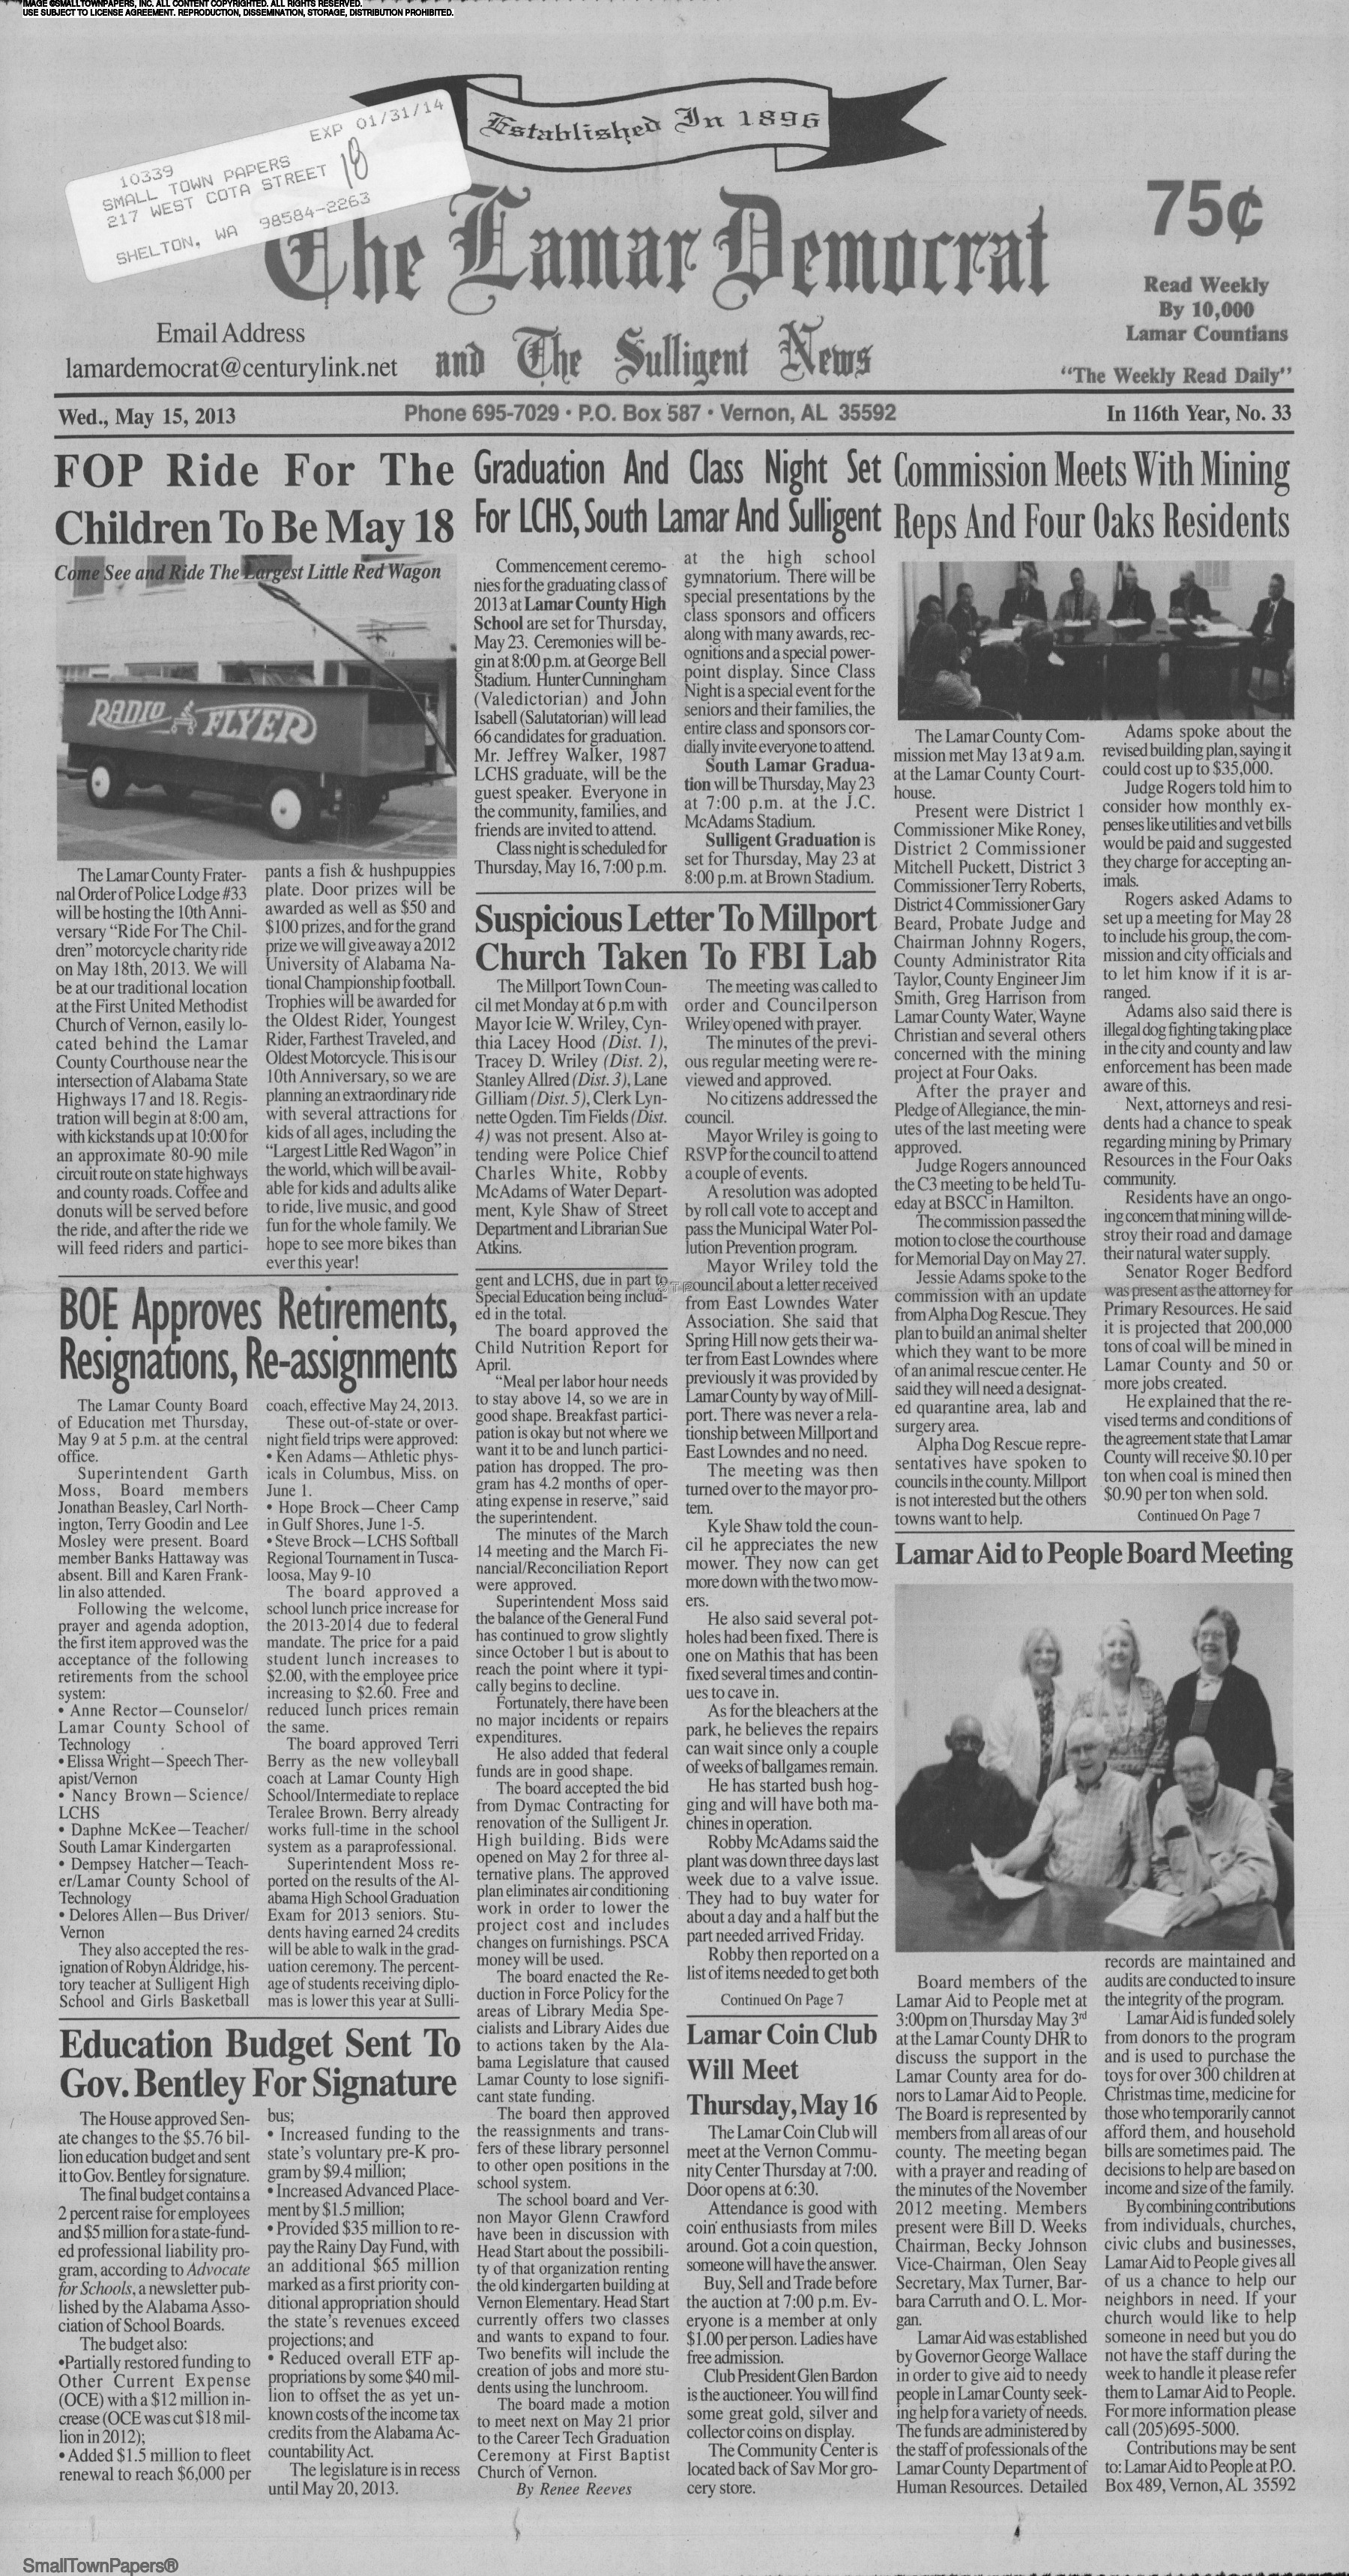 The Lamar Democrat and Sulligent News May 15, 2013: Page 1